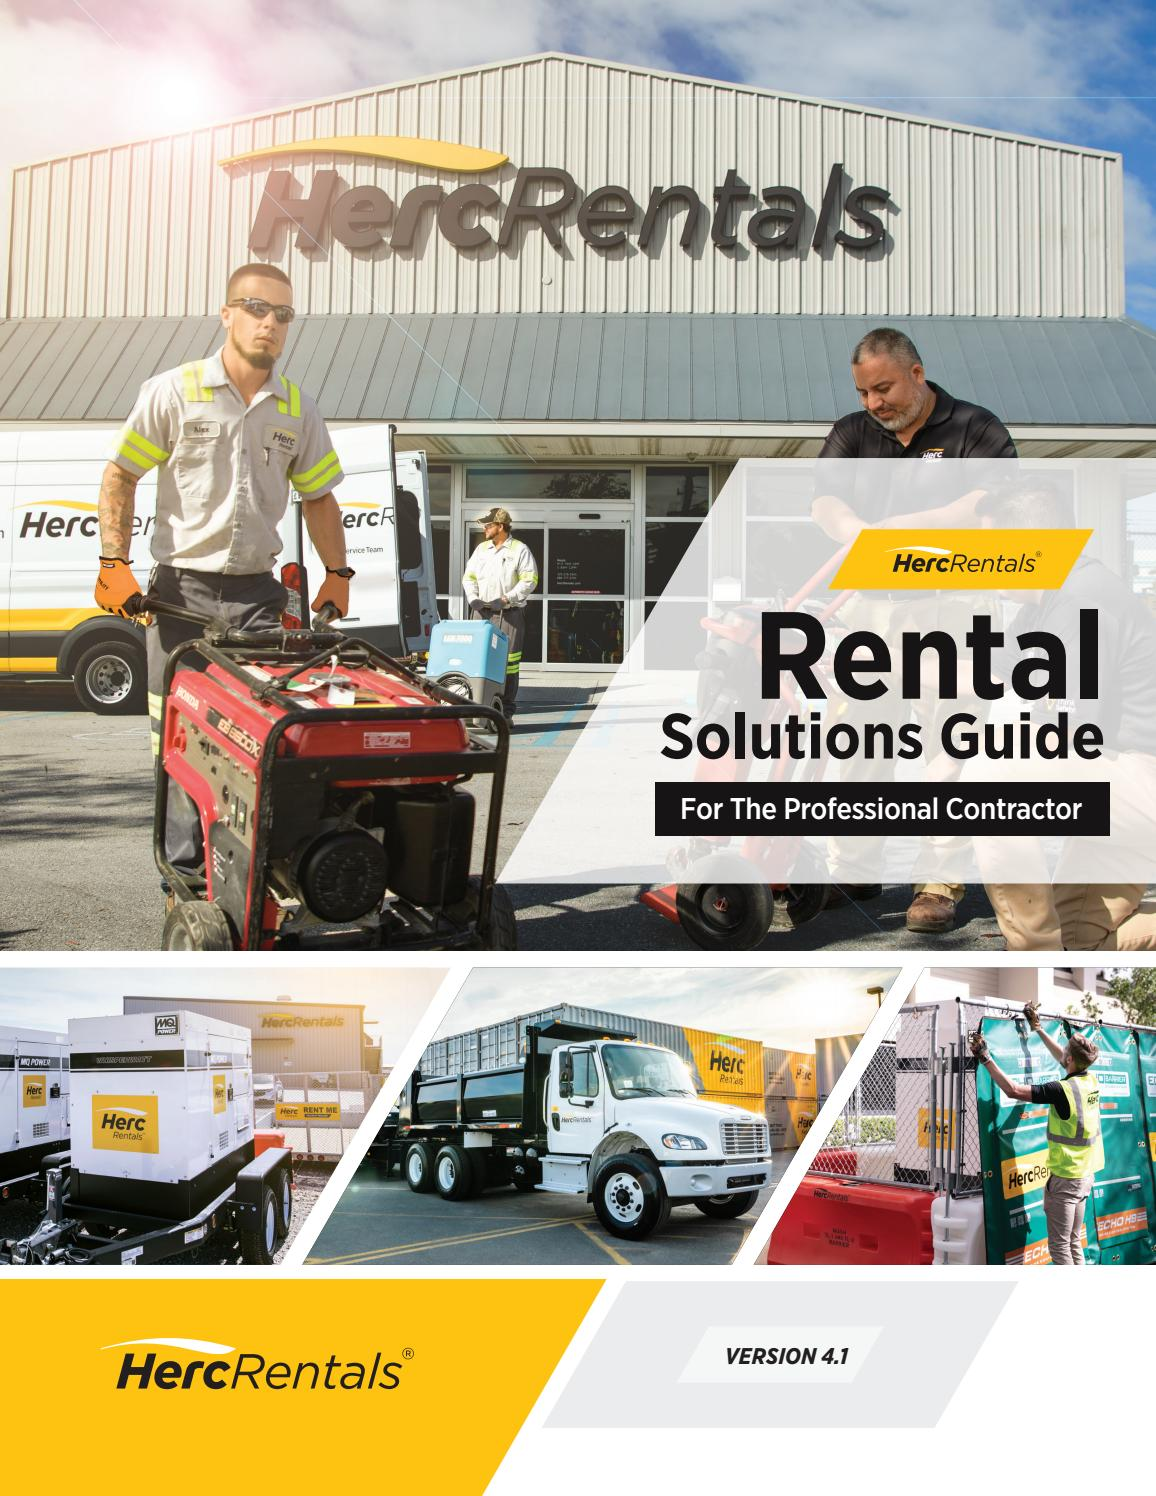 Herc Rentals Solutions Guide by Herc Rentals - issuu